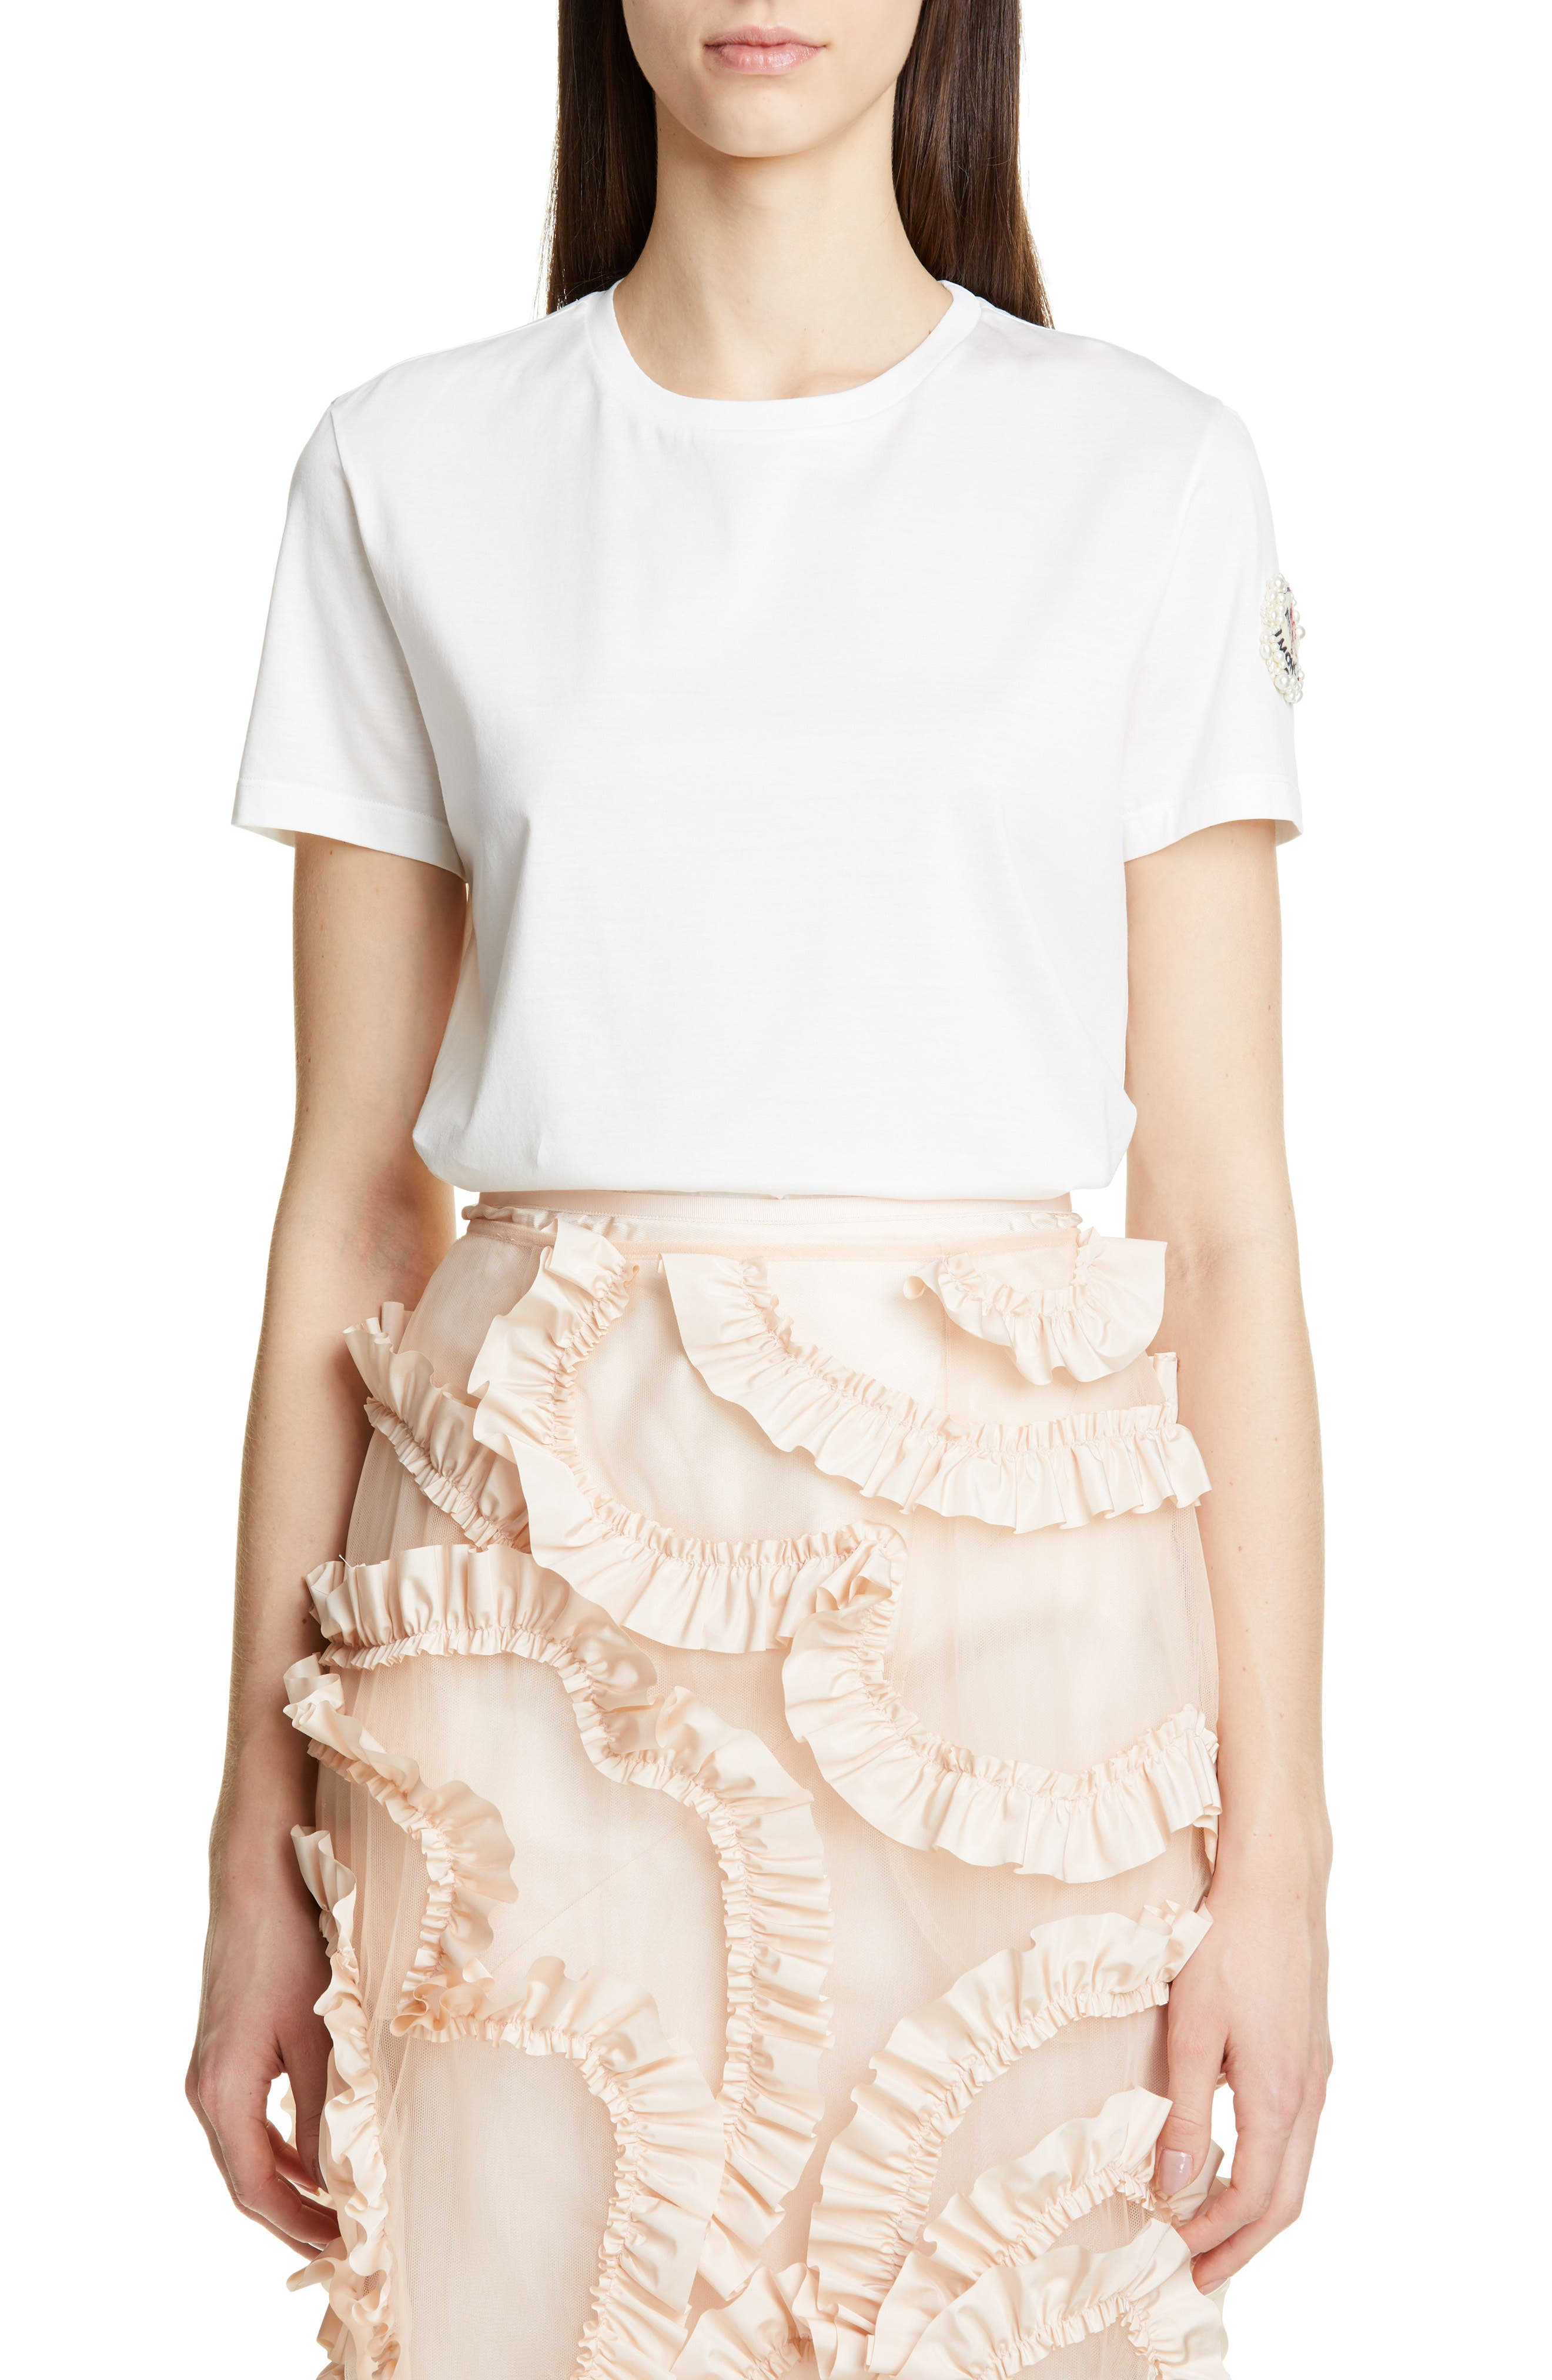 MONCLER GENIUS BY MONCLER x 4 Simone Rocha Imitation Pearl Embellished Tee, Main, color, WHITE